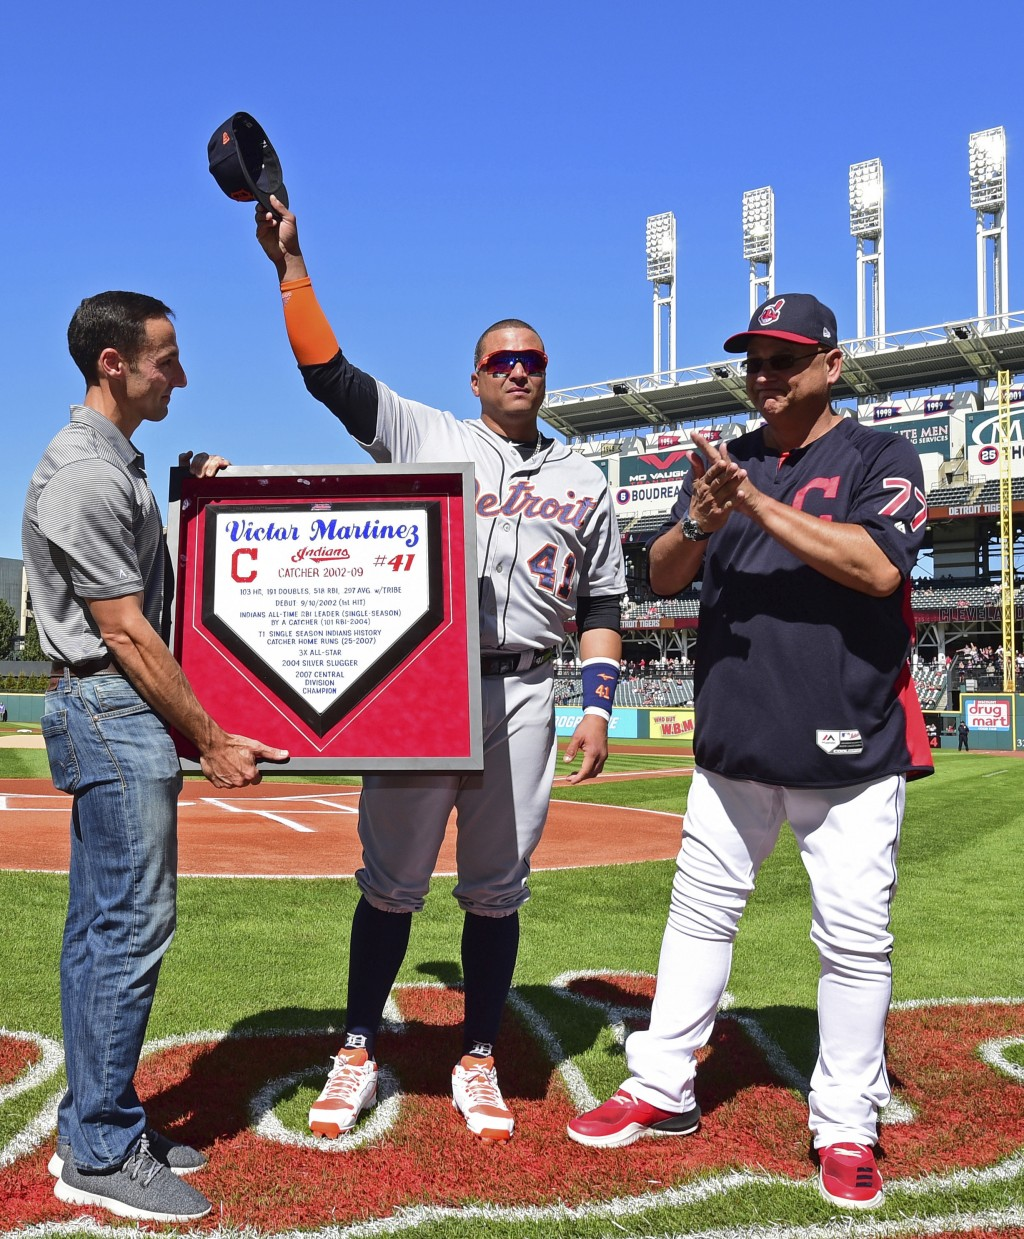 Detroit Tigers' Victor Martinez, center, waves to fans acknowledging his retirement during a pregame ceremony before a baseball game between the Cleve